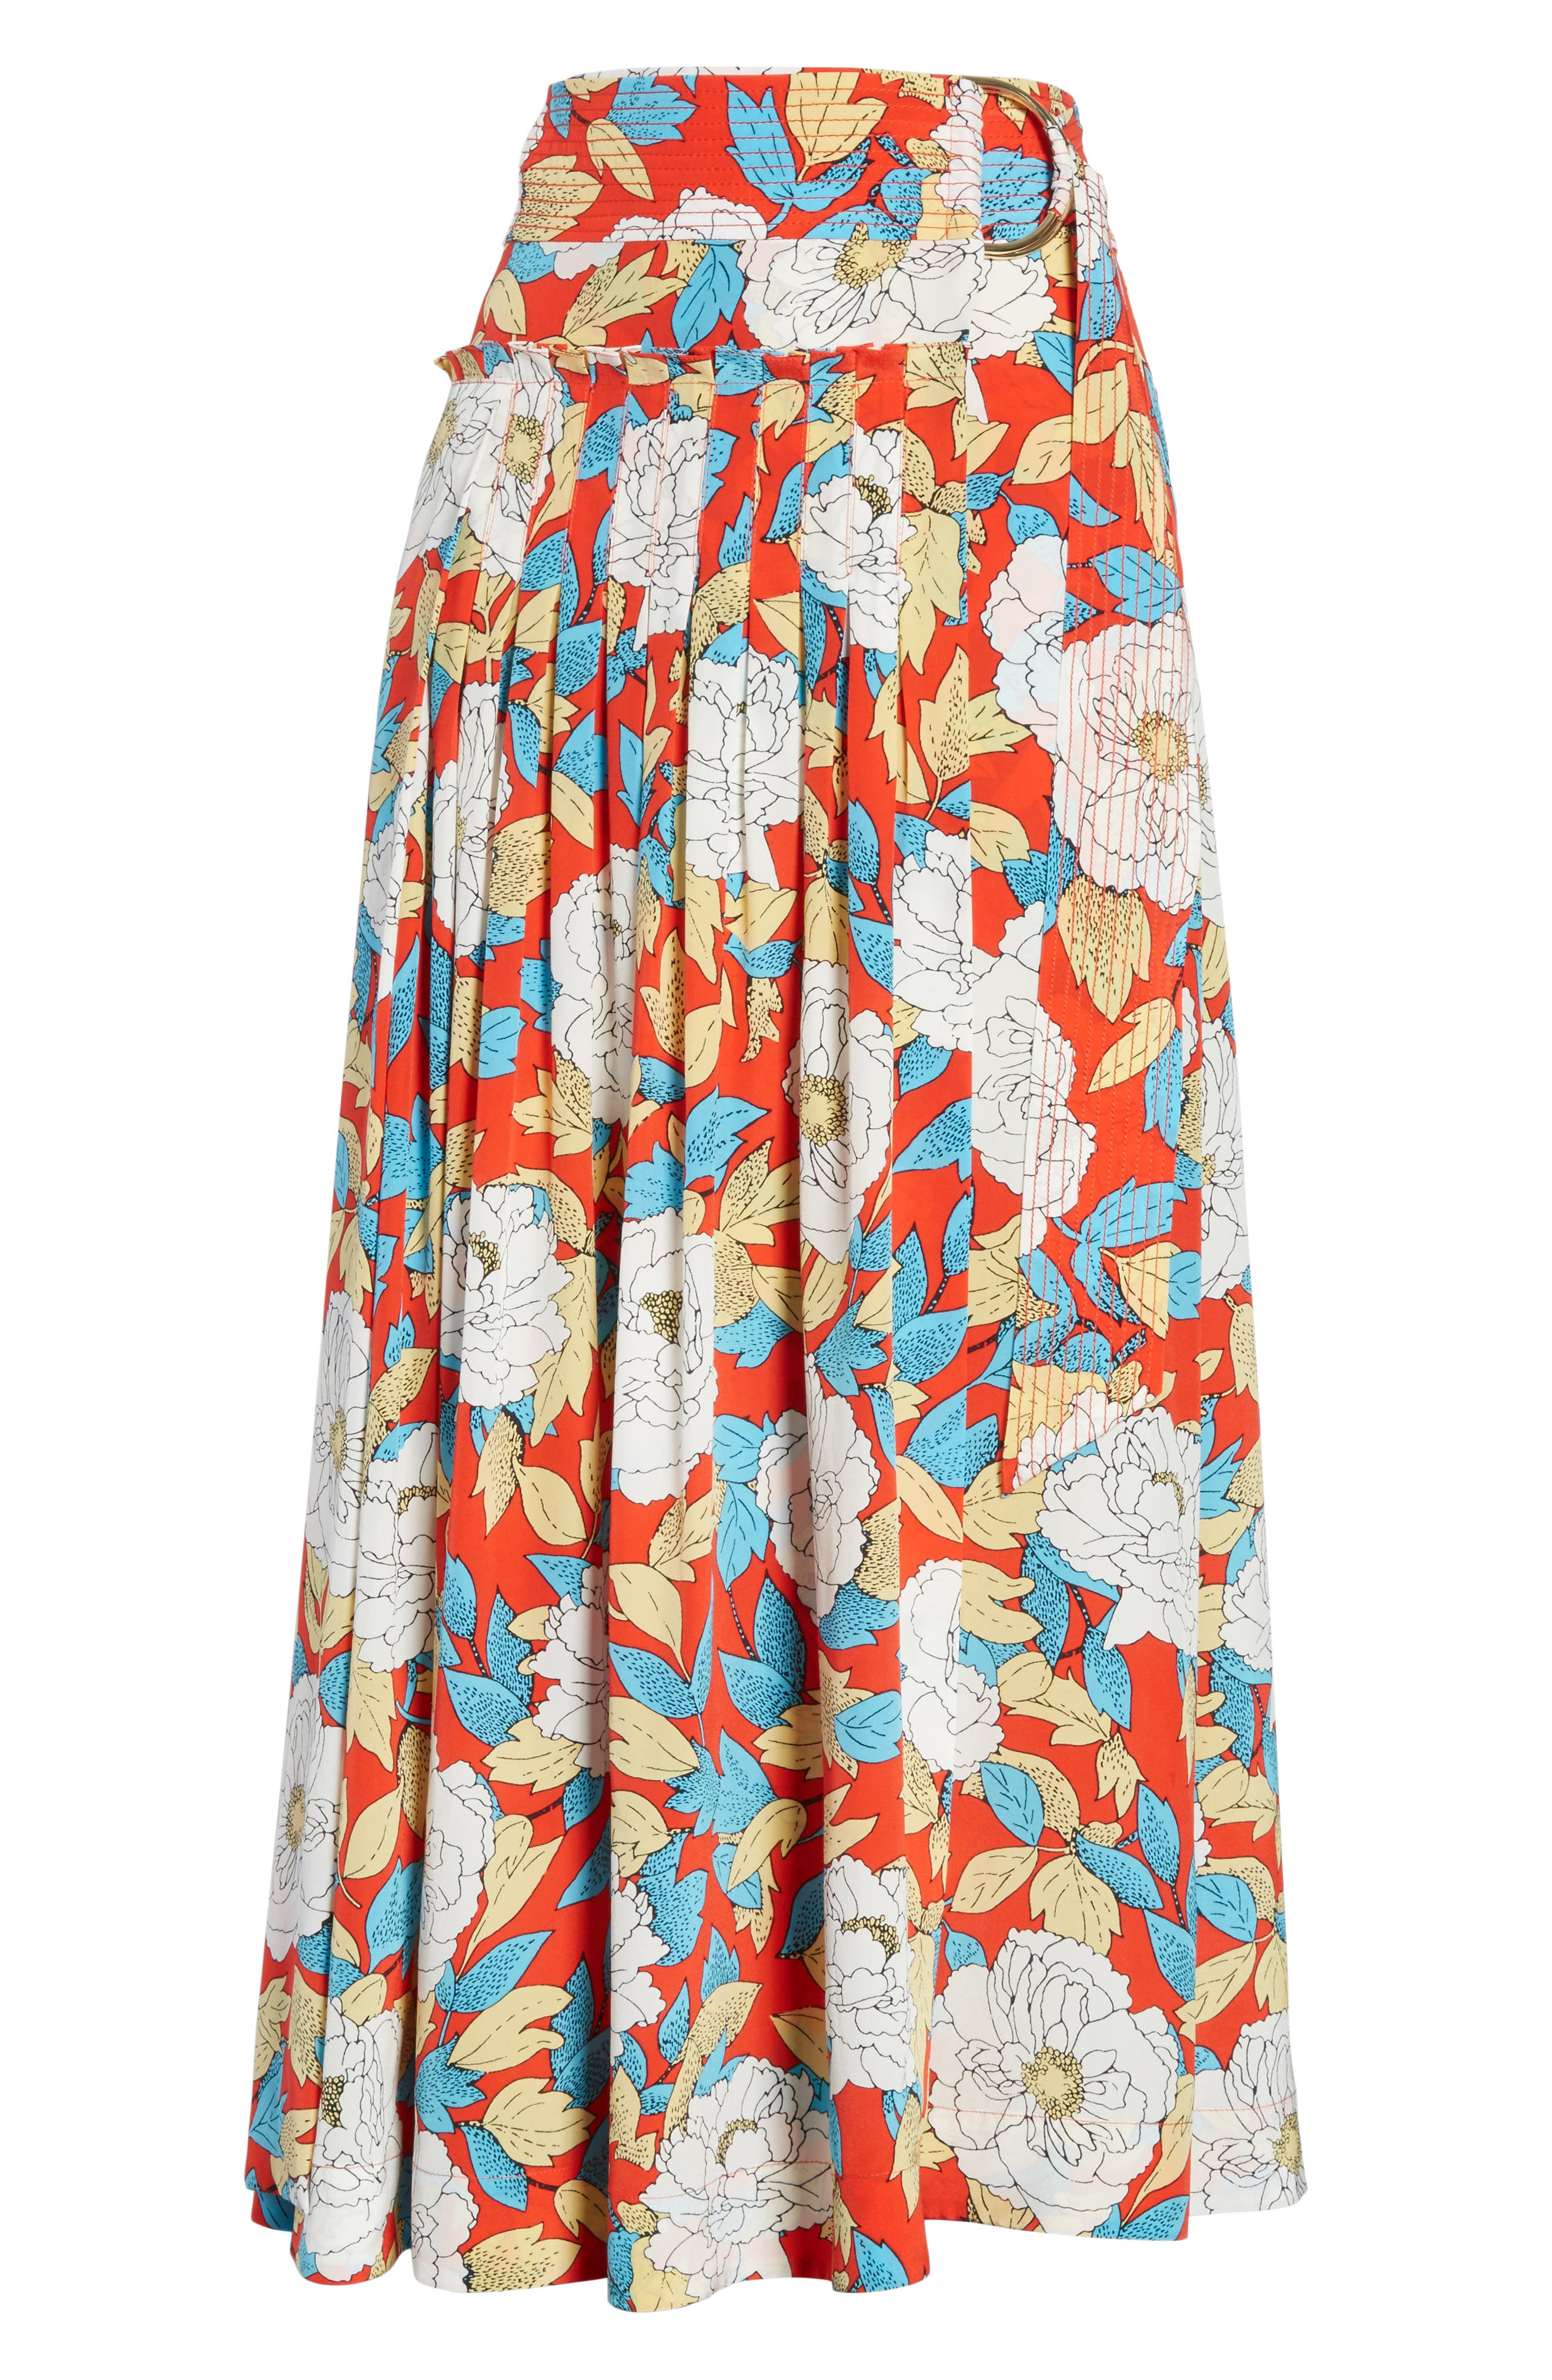 Diane von Furstenberg Floral Silk Midi Skirt,                             Alternate thumbnail 6, color,                             600